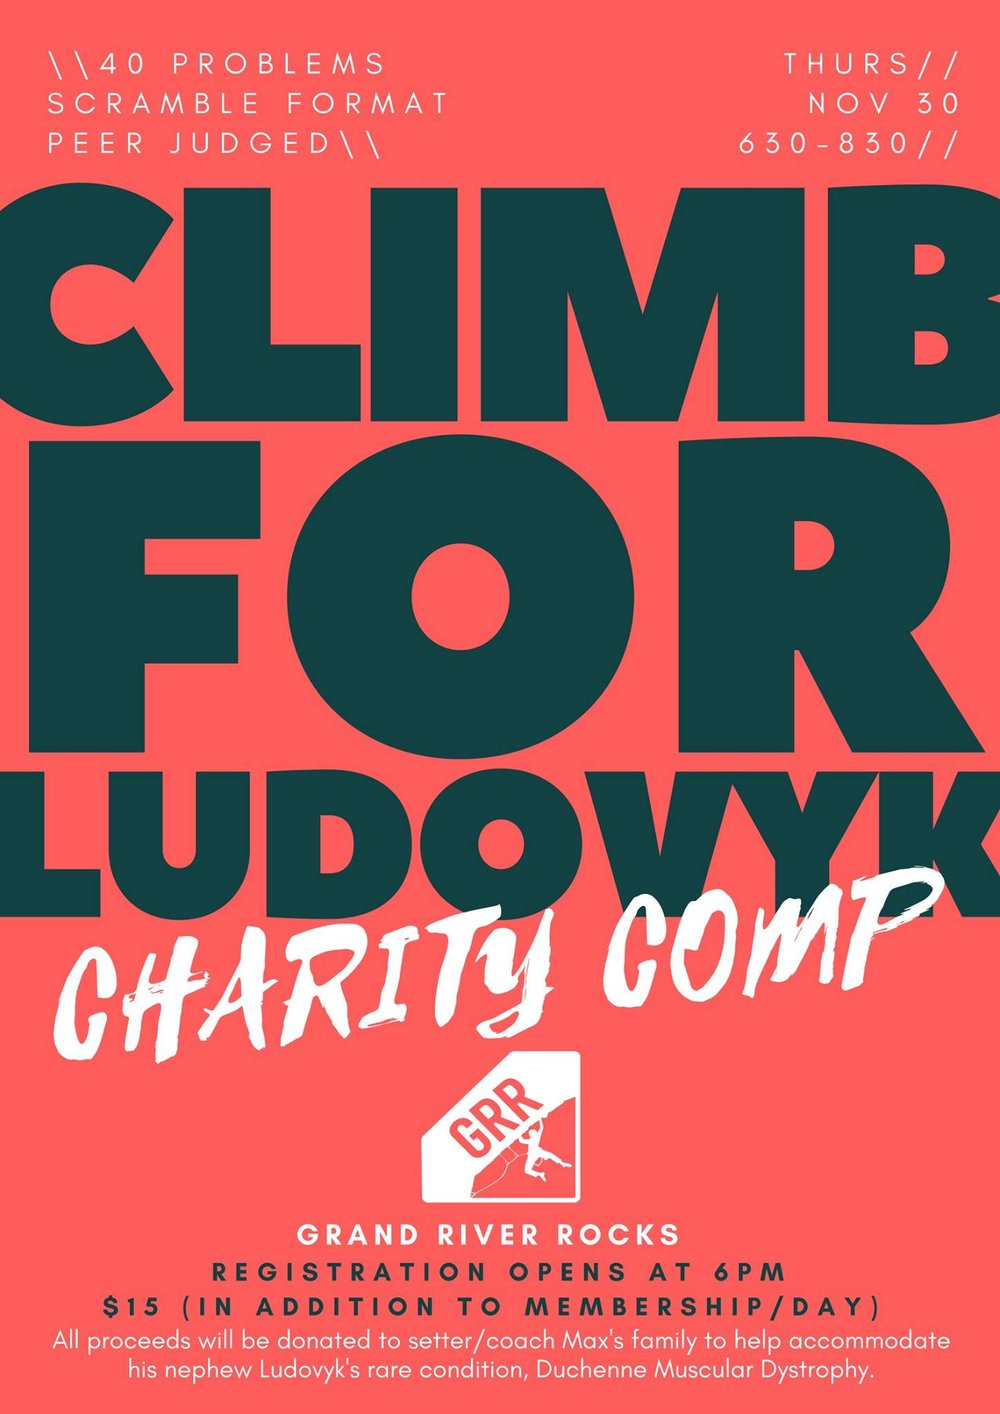 Climb with me at Grand River Rocks (Kitchener, Ontario) on November 30th to help raise funds for Ludovyk!